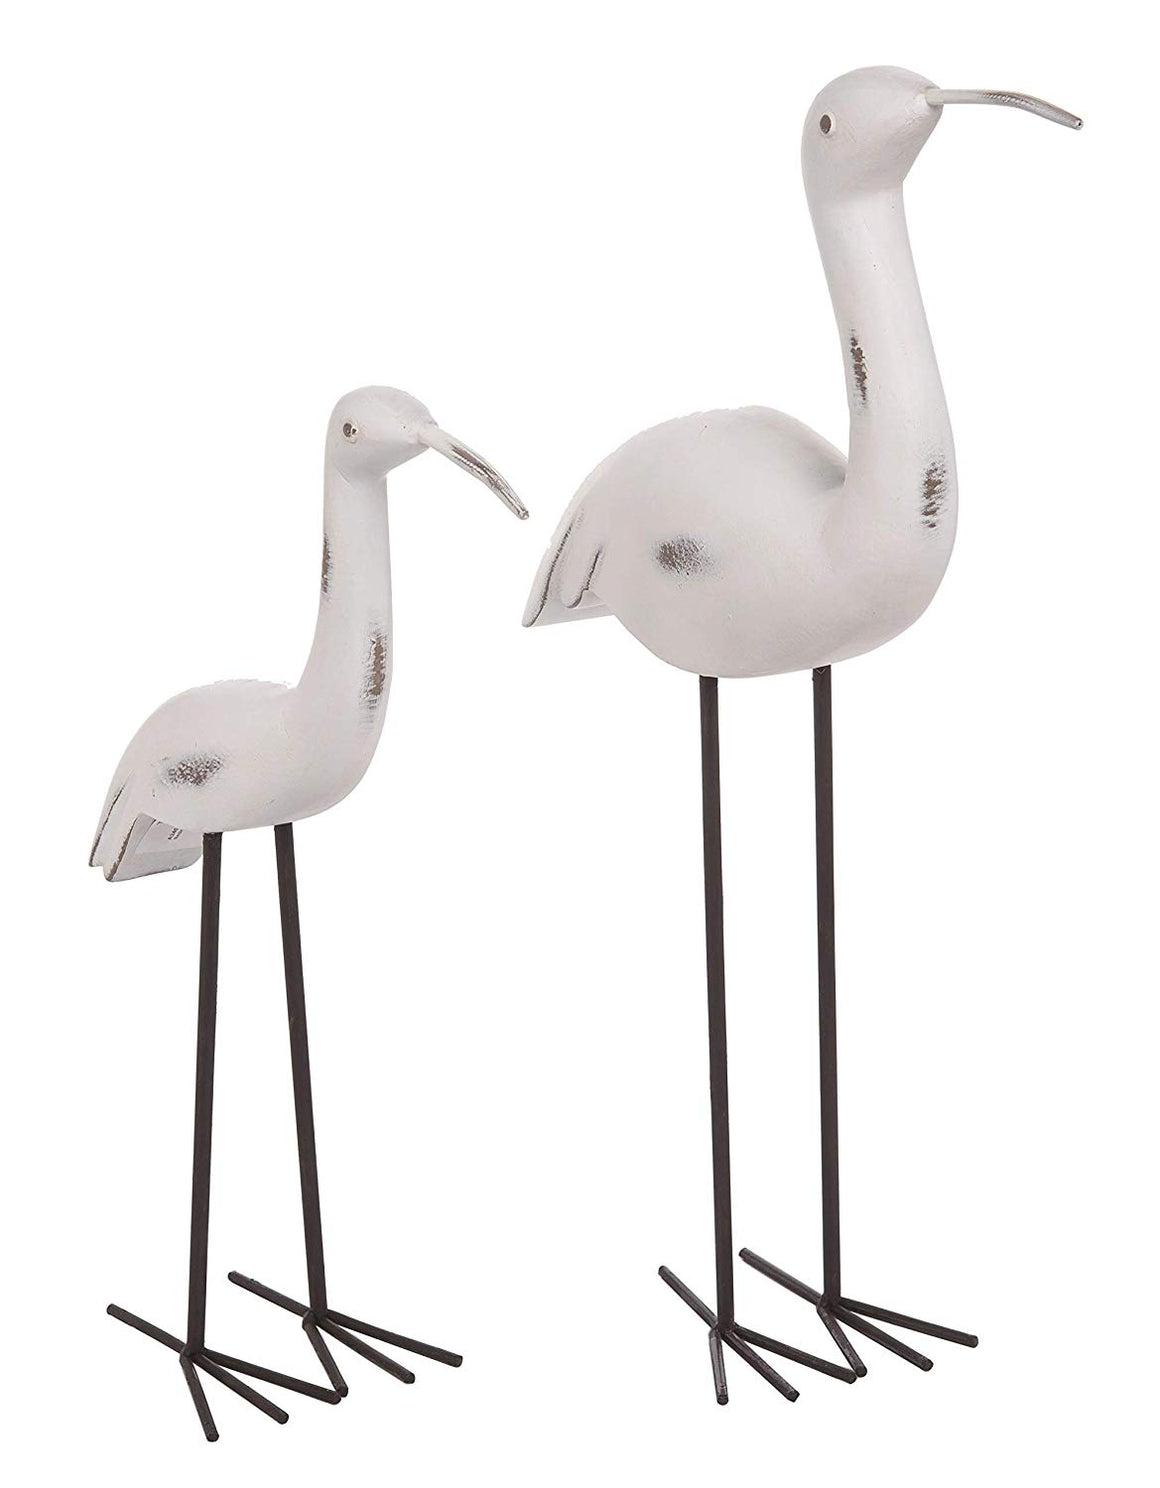 Transpac Sandpiper Bird Statues Set of 2-12 Inches and 16 Inches High, White, Black